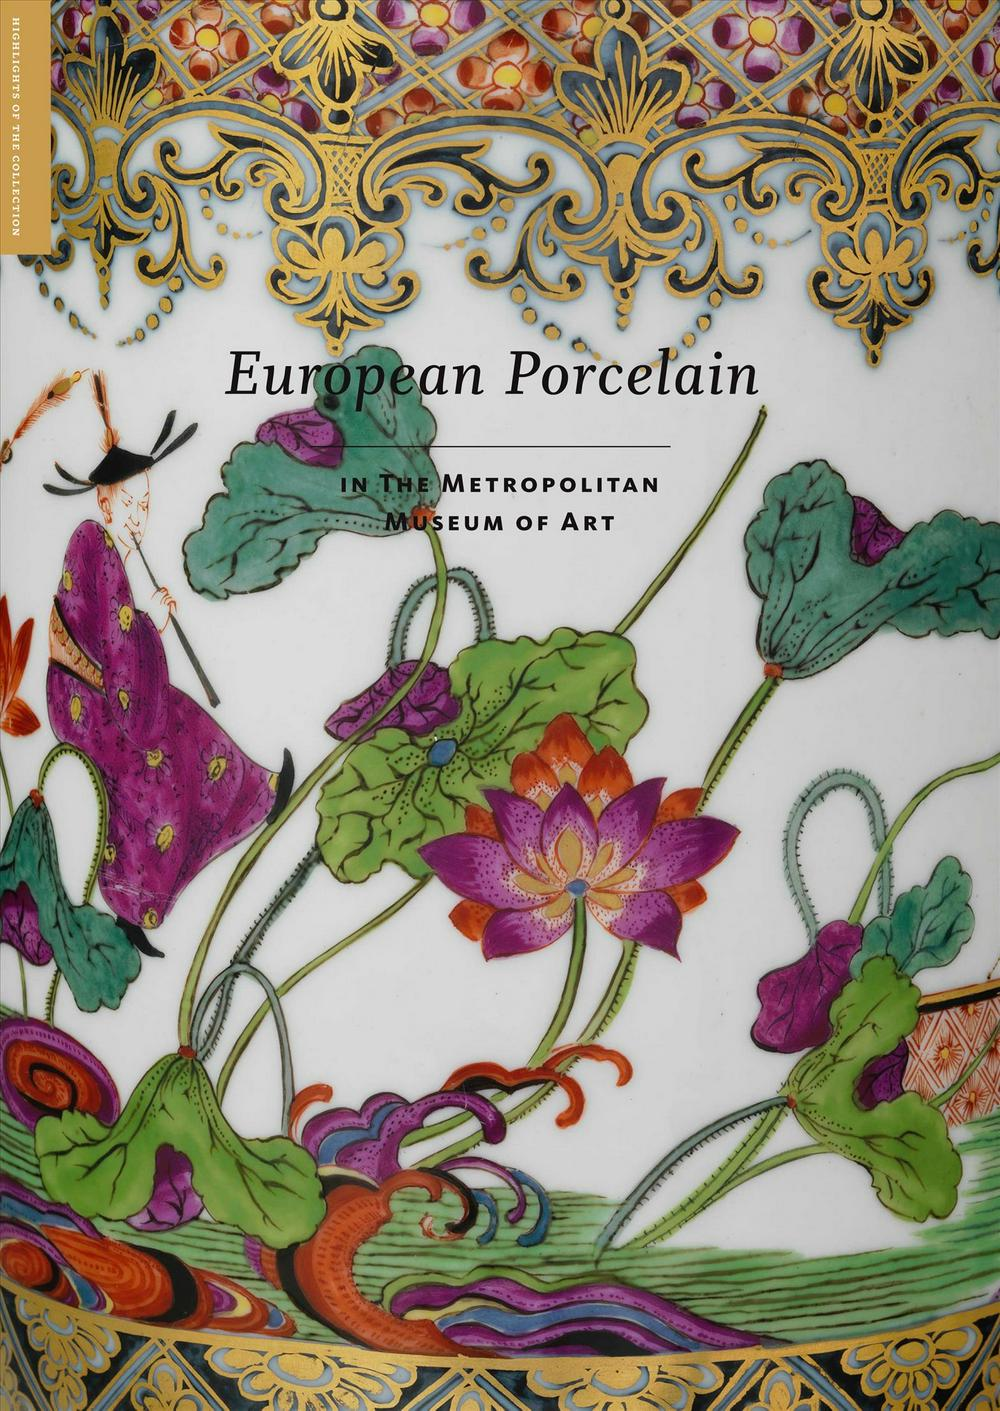 European Porcelain - In The Metropolitan Museum of Art